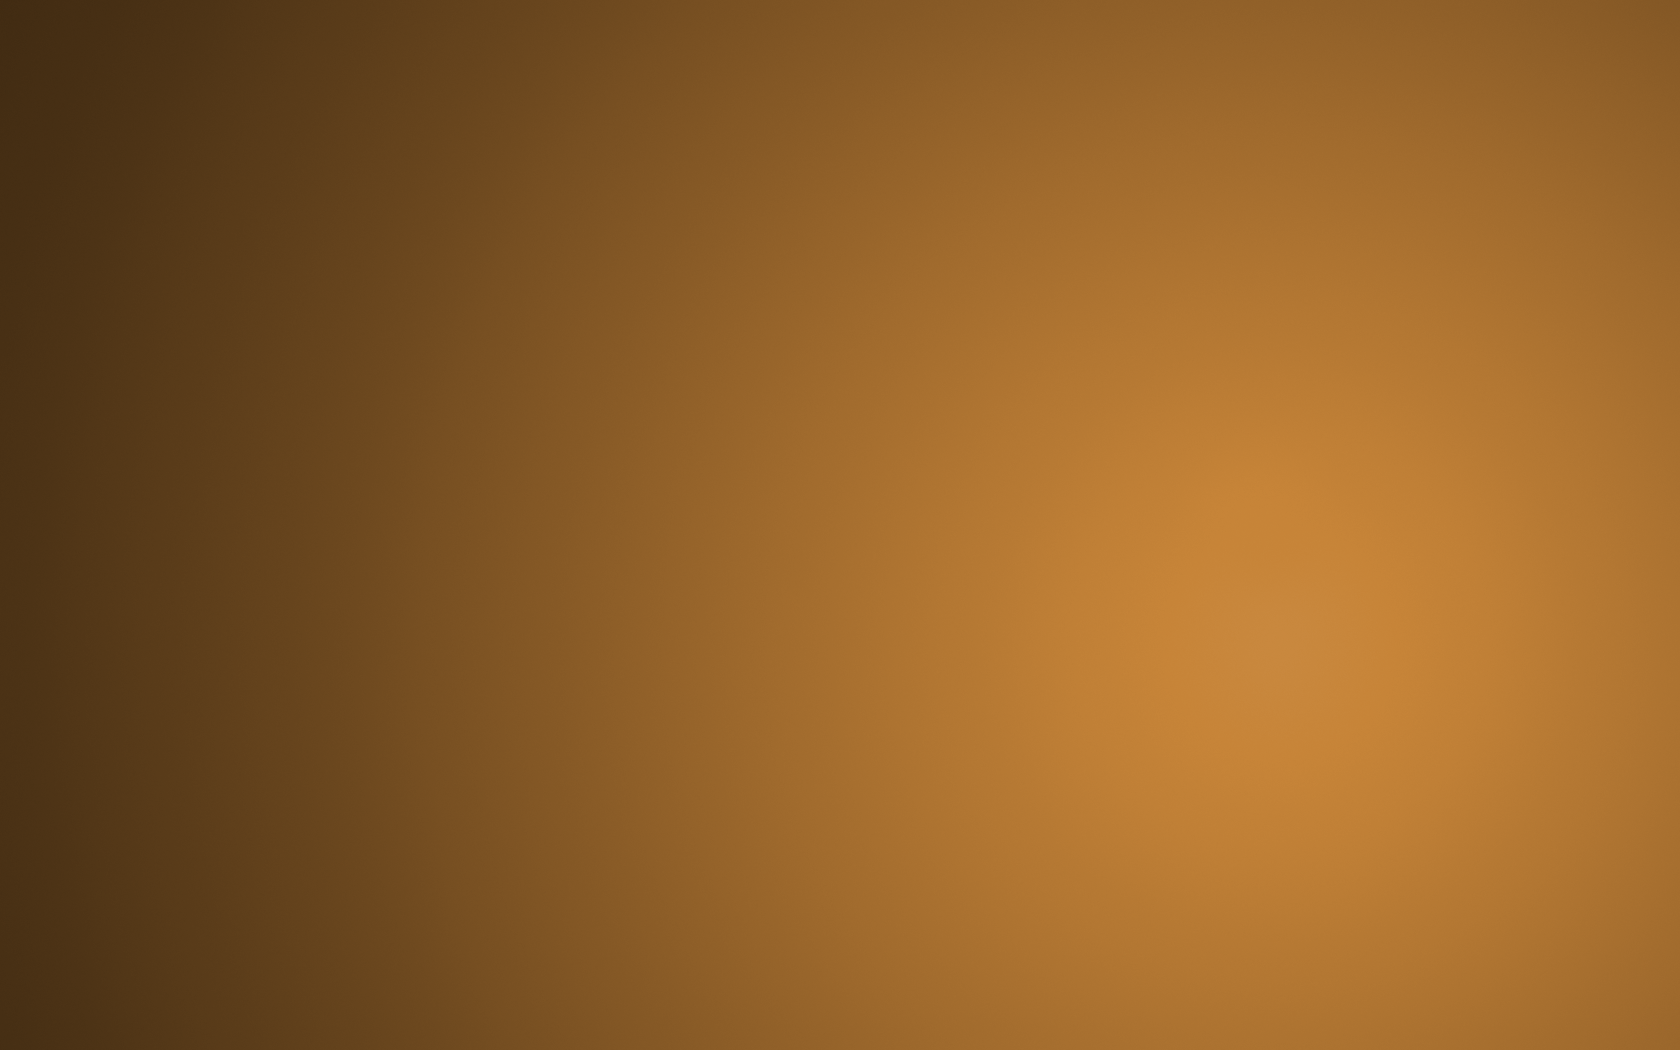 Brown Gradient By Keff85 On Deviantart .